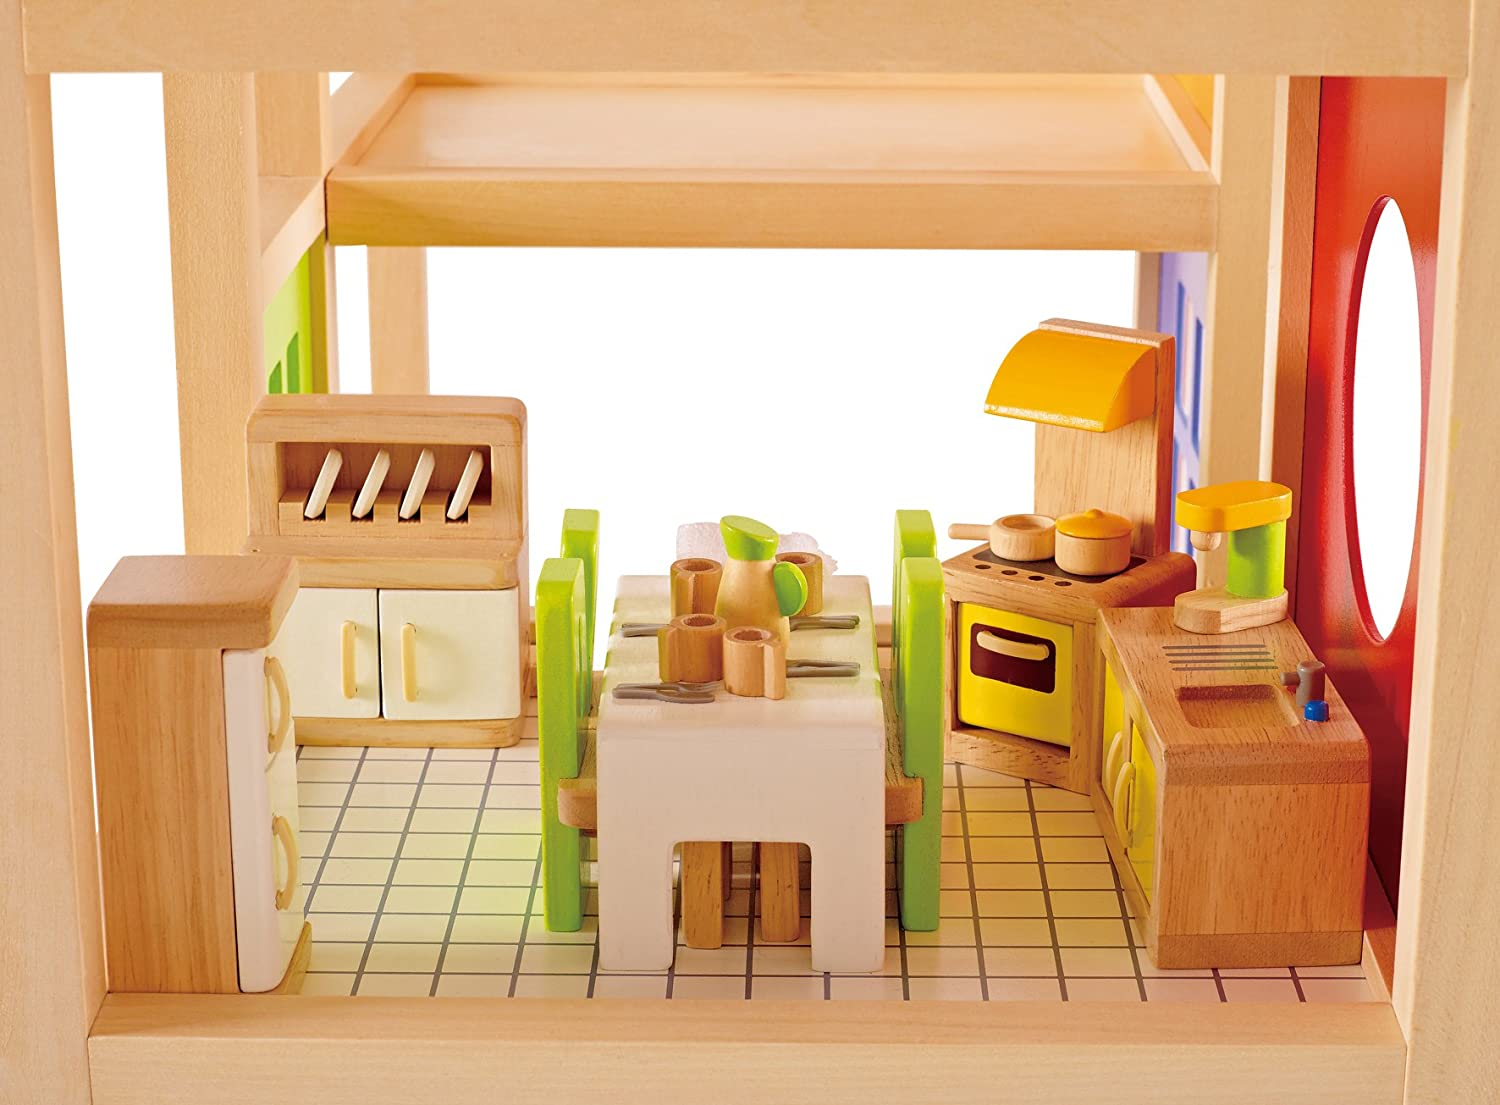 Kitchen Dollhouse Furniture Amazoncom Hape Wooden Doll House Furniture Kitchen Set With